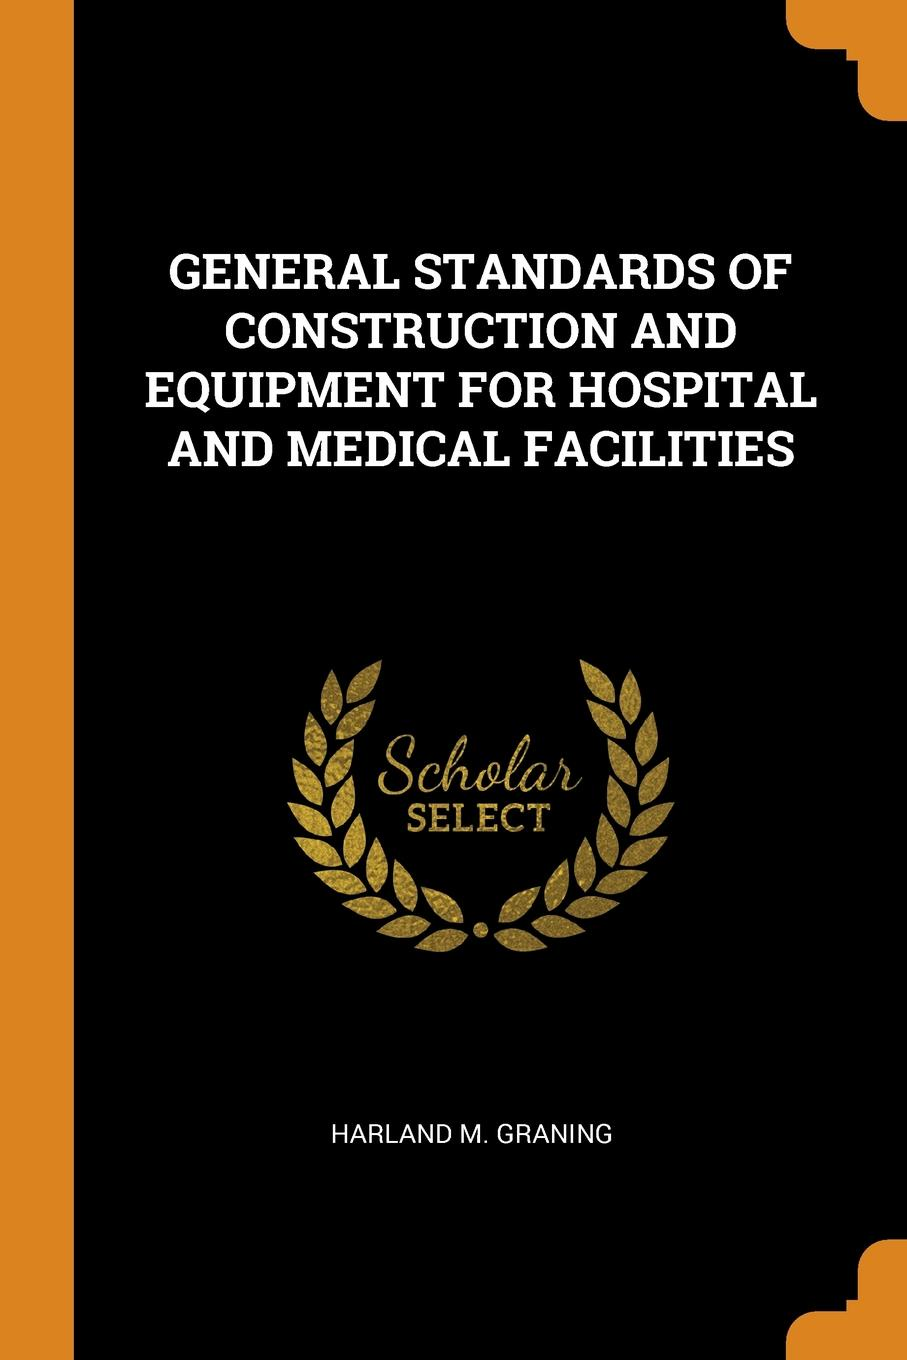 HARLAND M. GRANING GENERAL STANDARDS OF CONSTRUCTION AND EQUIPMENT FOR HOSPITAL MEDICAL FACILITIES